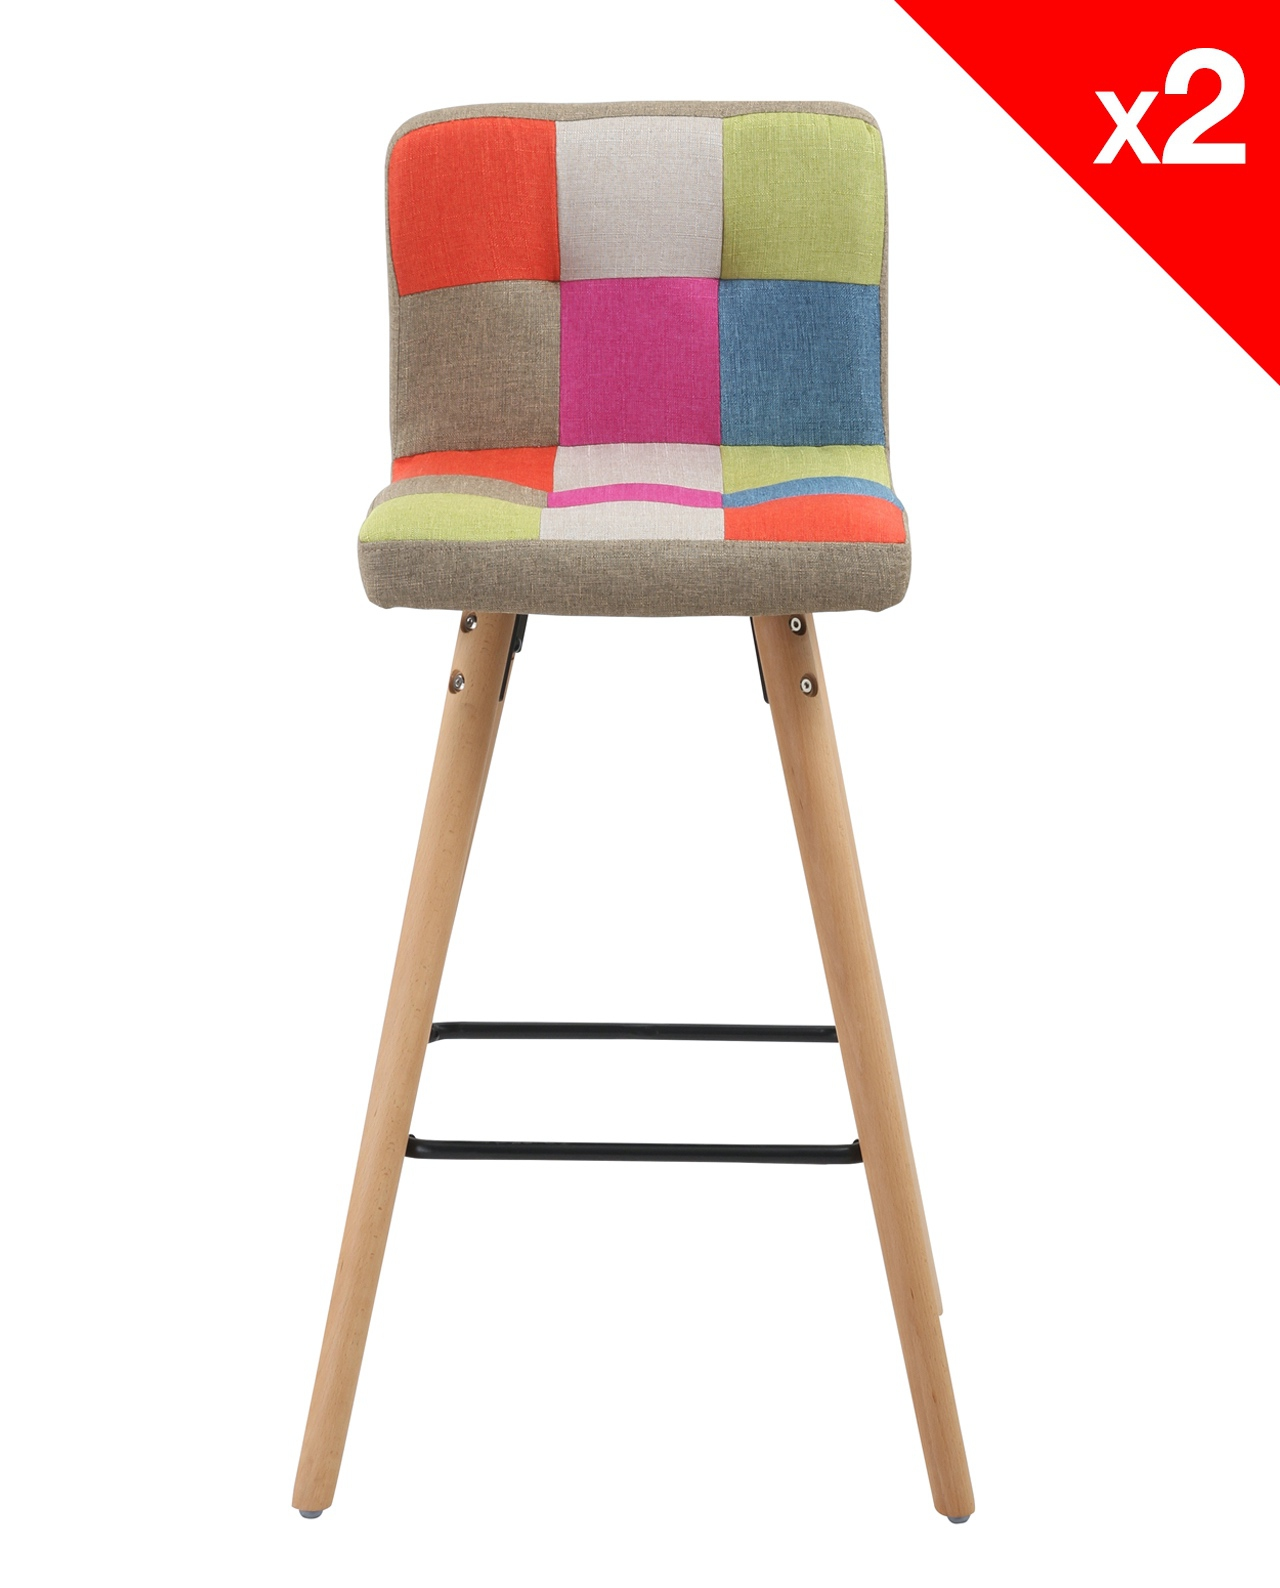 La Redoute Chaises Scandinaves Chaise Haute Scandinave Patchwork